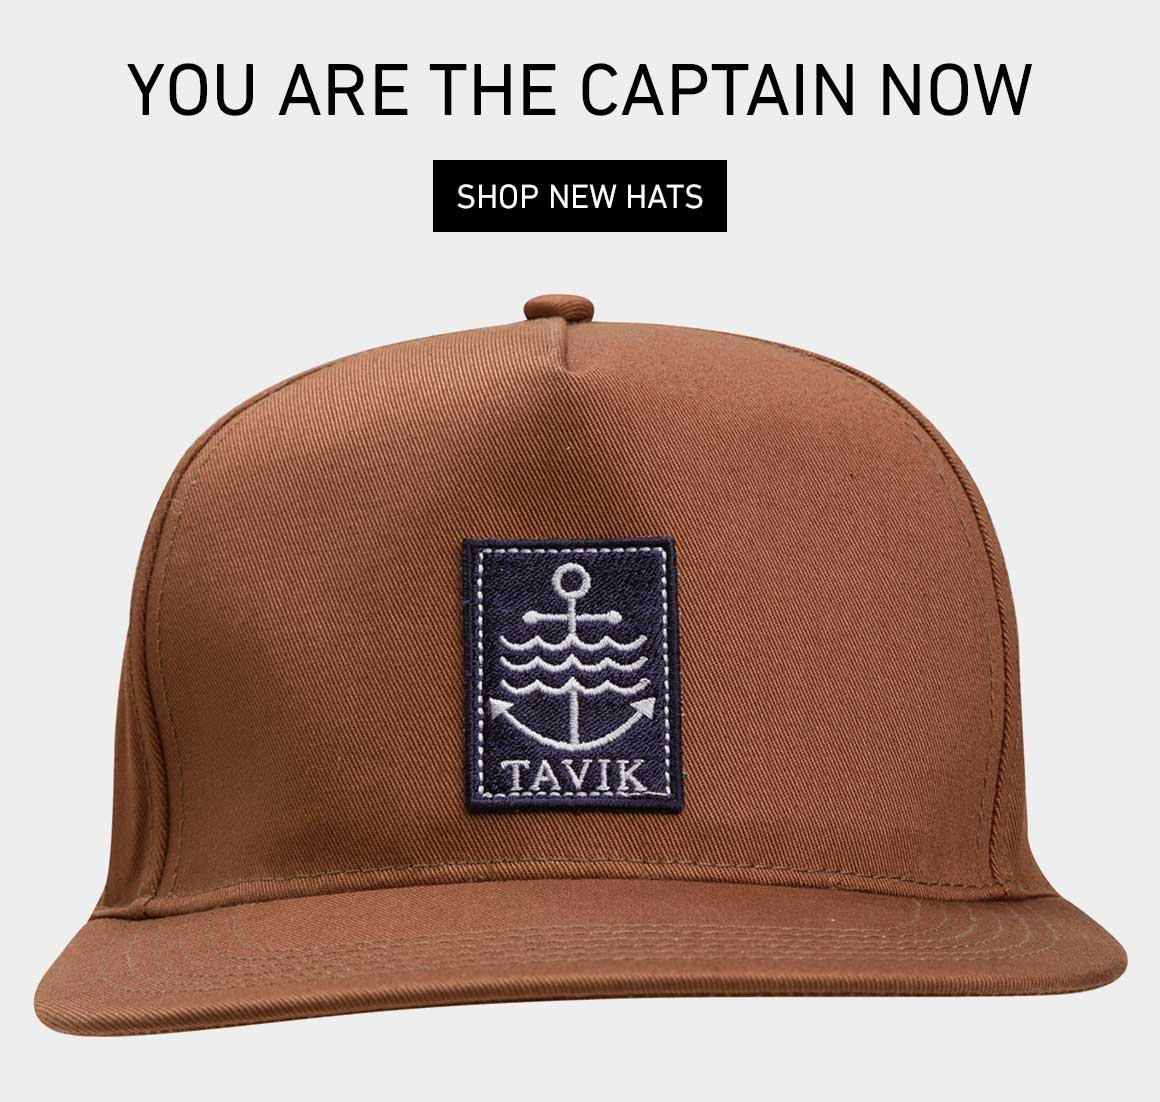 You Are The Captain Now: Shop New Hats